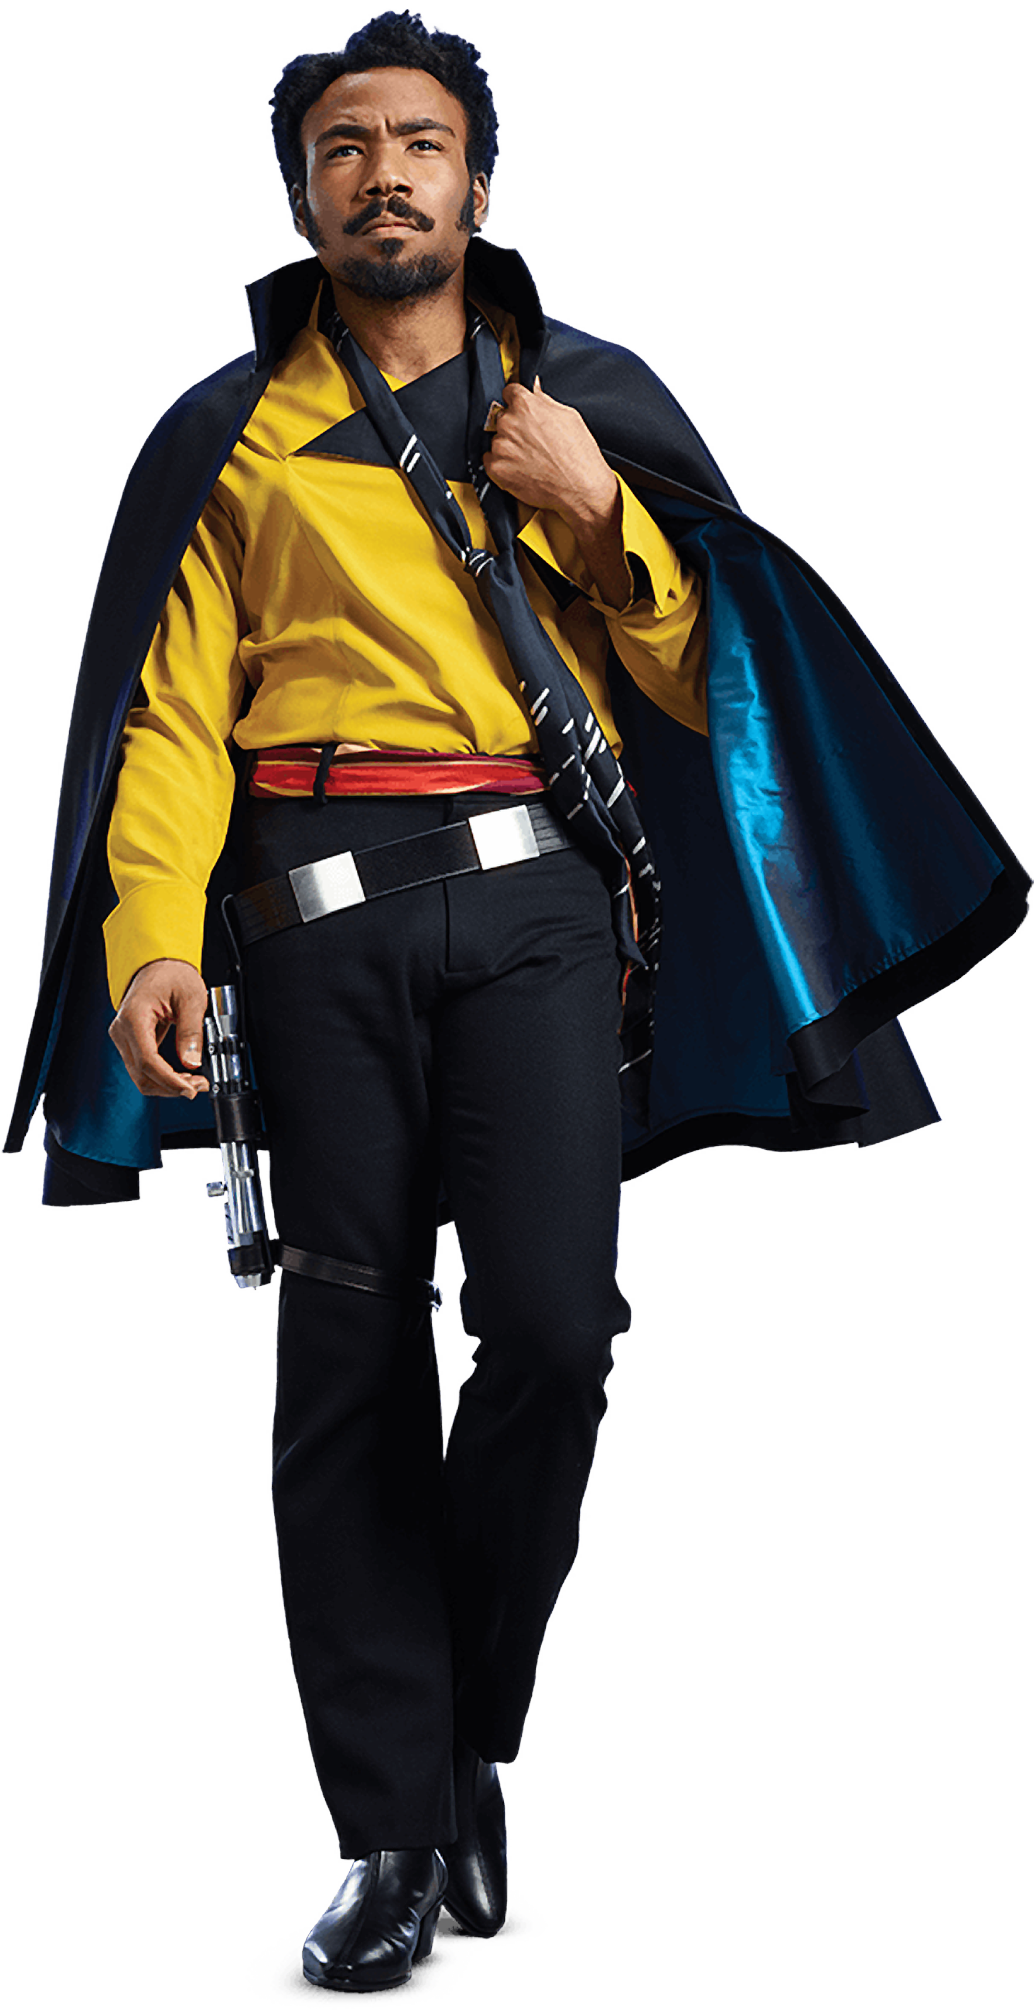 Image result for lando character young pose donald